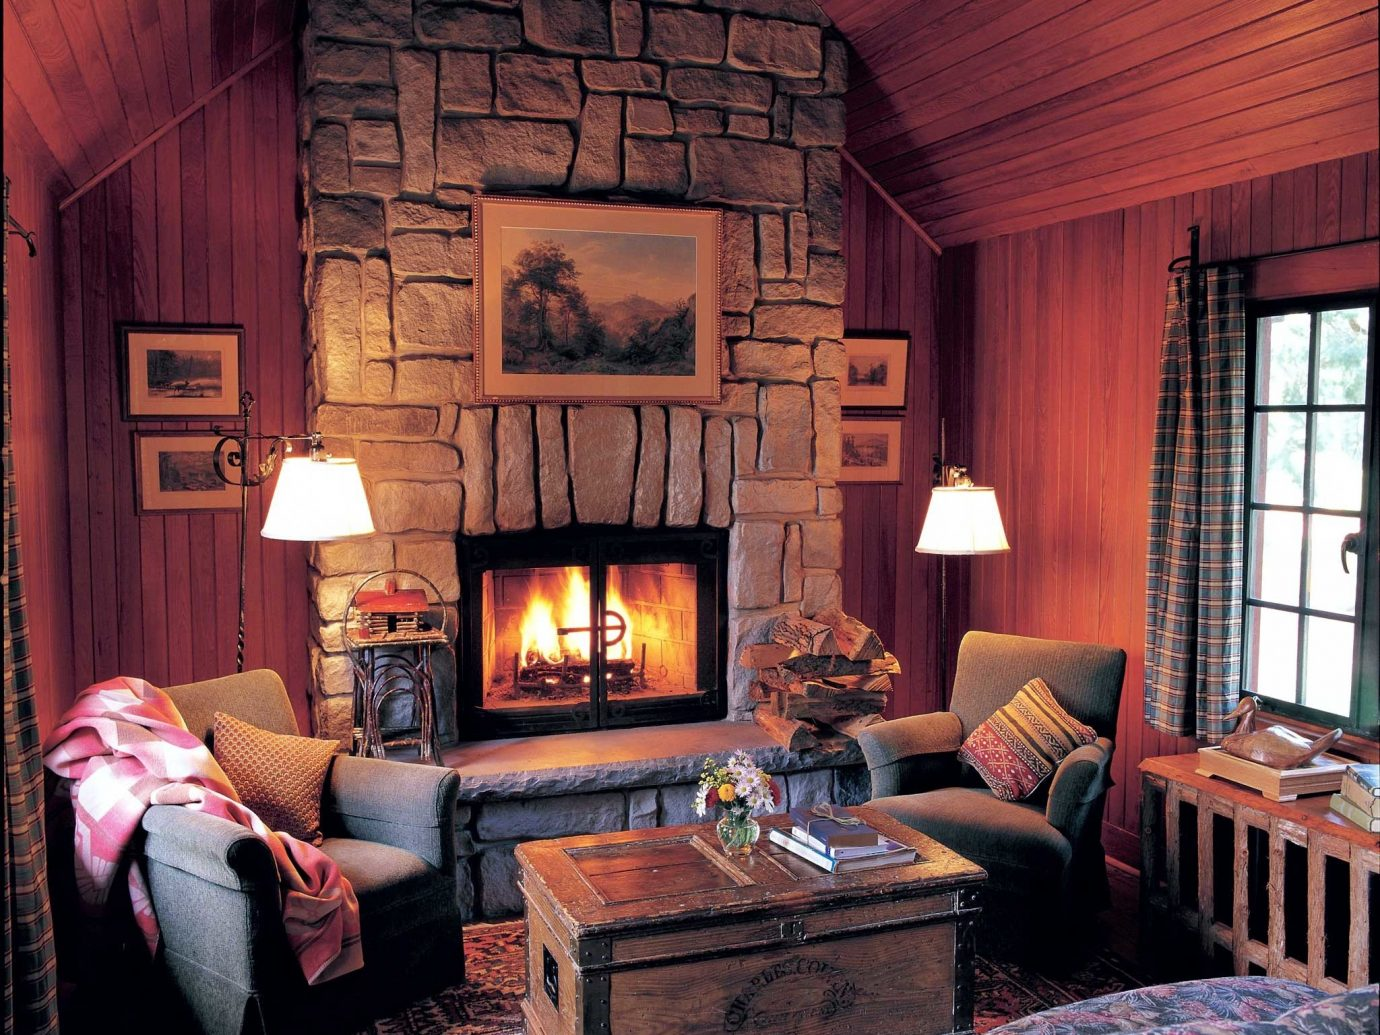 All-inclusive Fireplace Hotels Lakes + Rivers Living Lodge Resort Romance Waterfront room indoor sofa fire floor living room ceiling window house home cottage estate interior design hearth furniture wood farmhouse stone